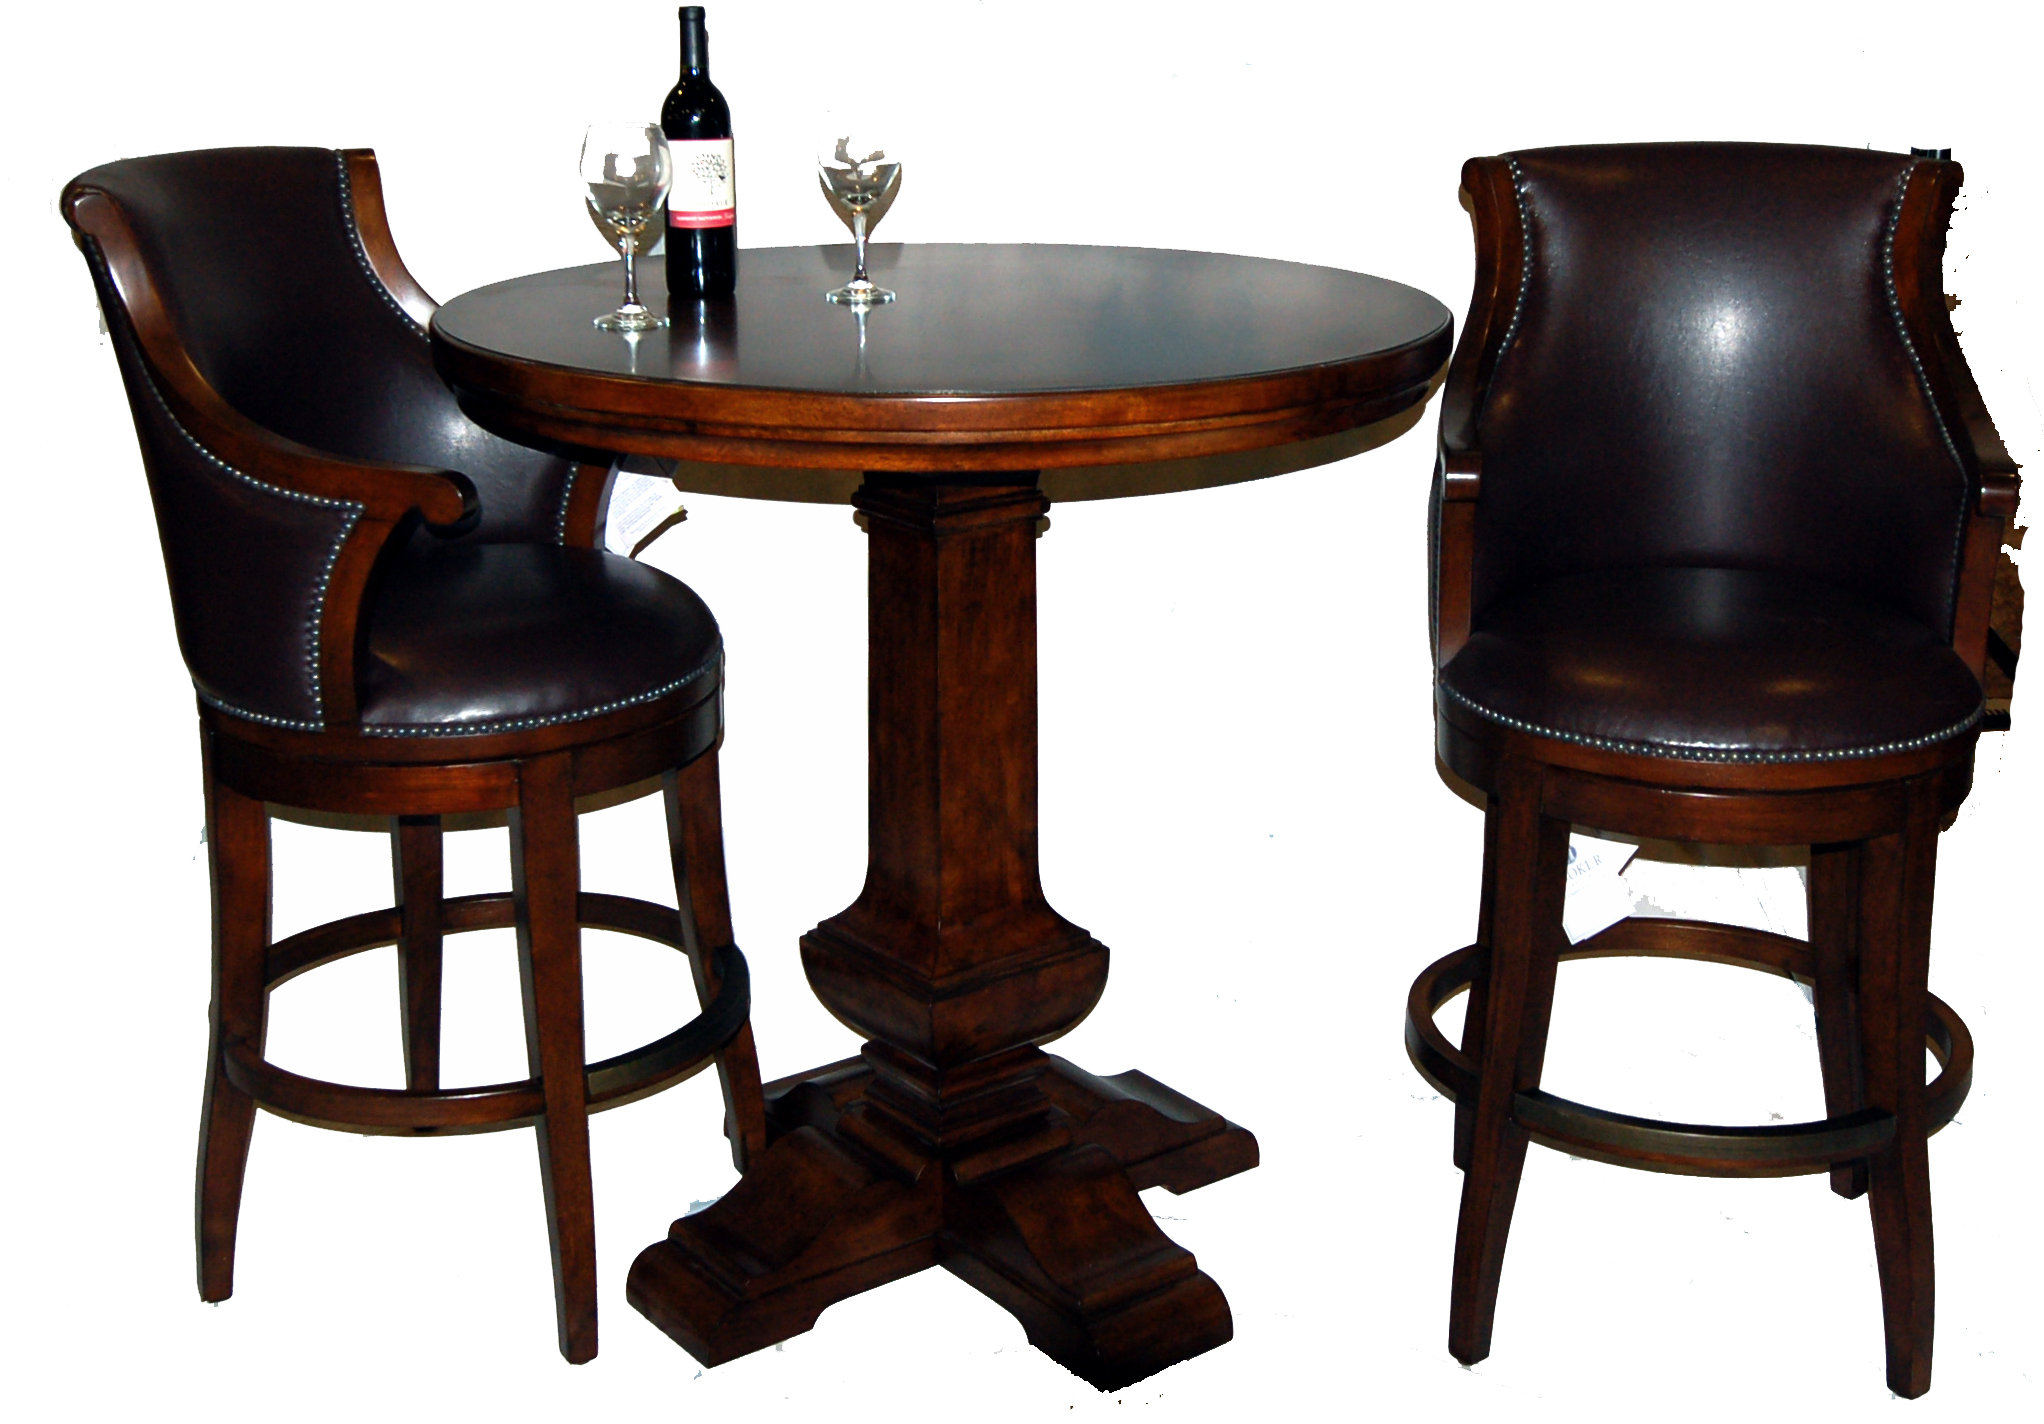 Bar Stools And Table Set 3 Piece Bar Table And Leather Swivel Stool Set Ebay